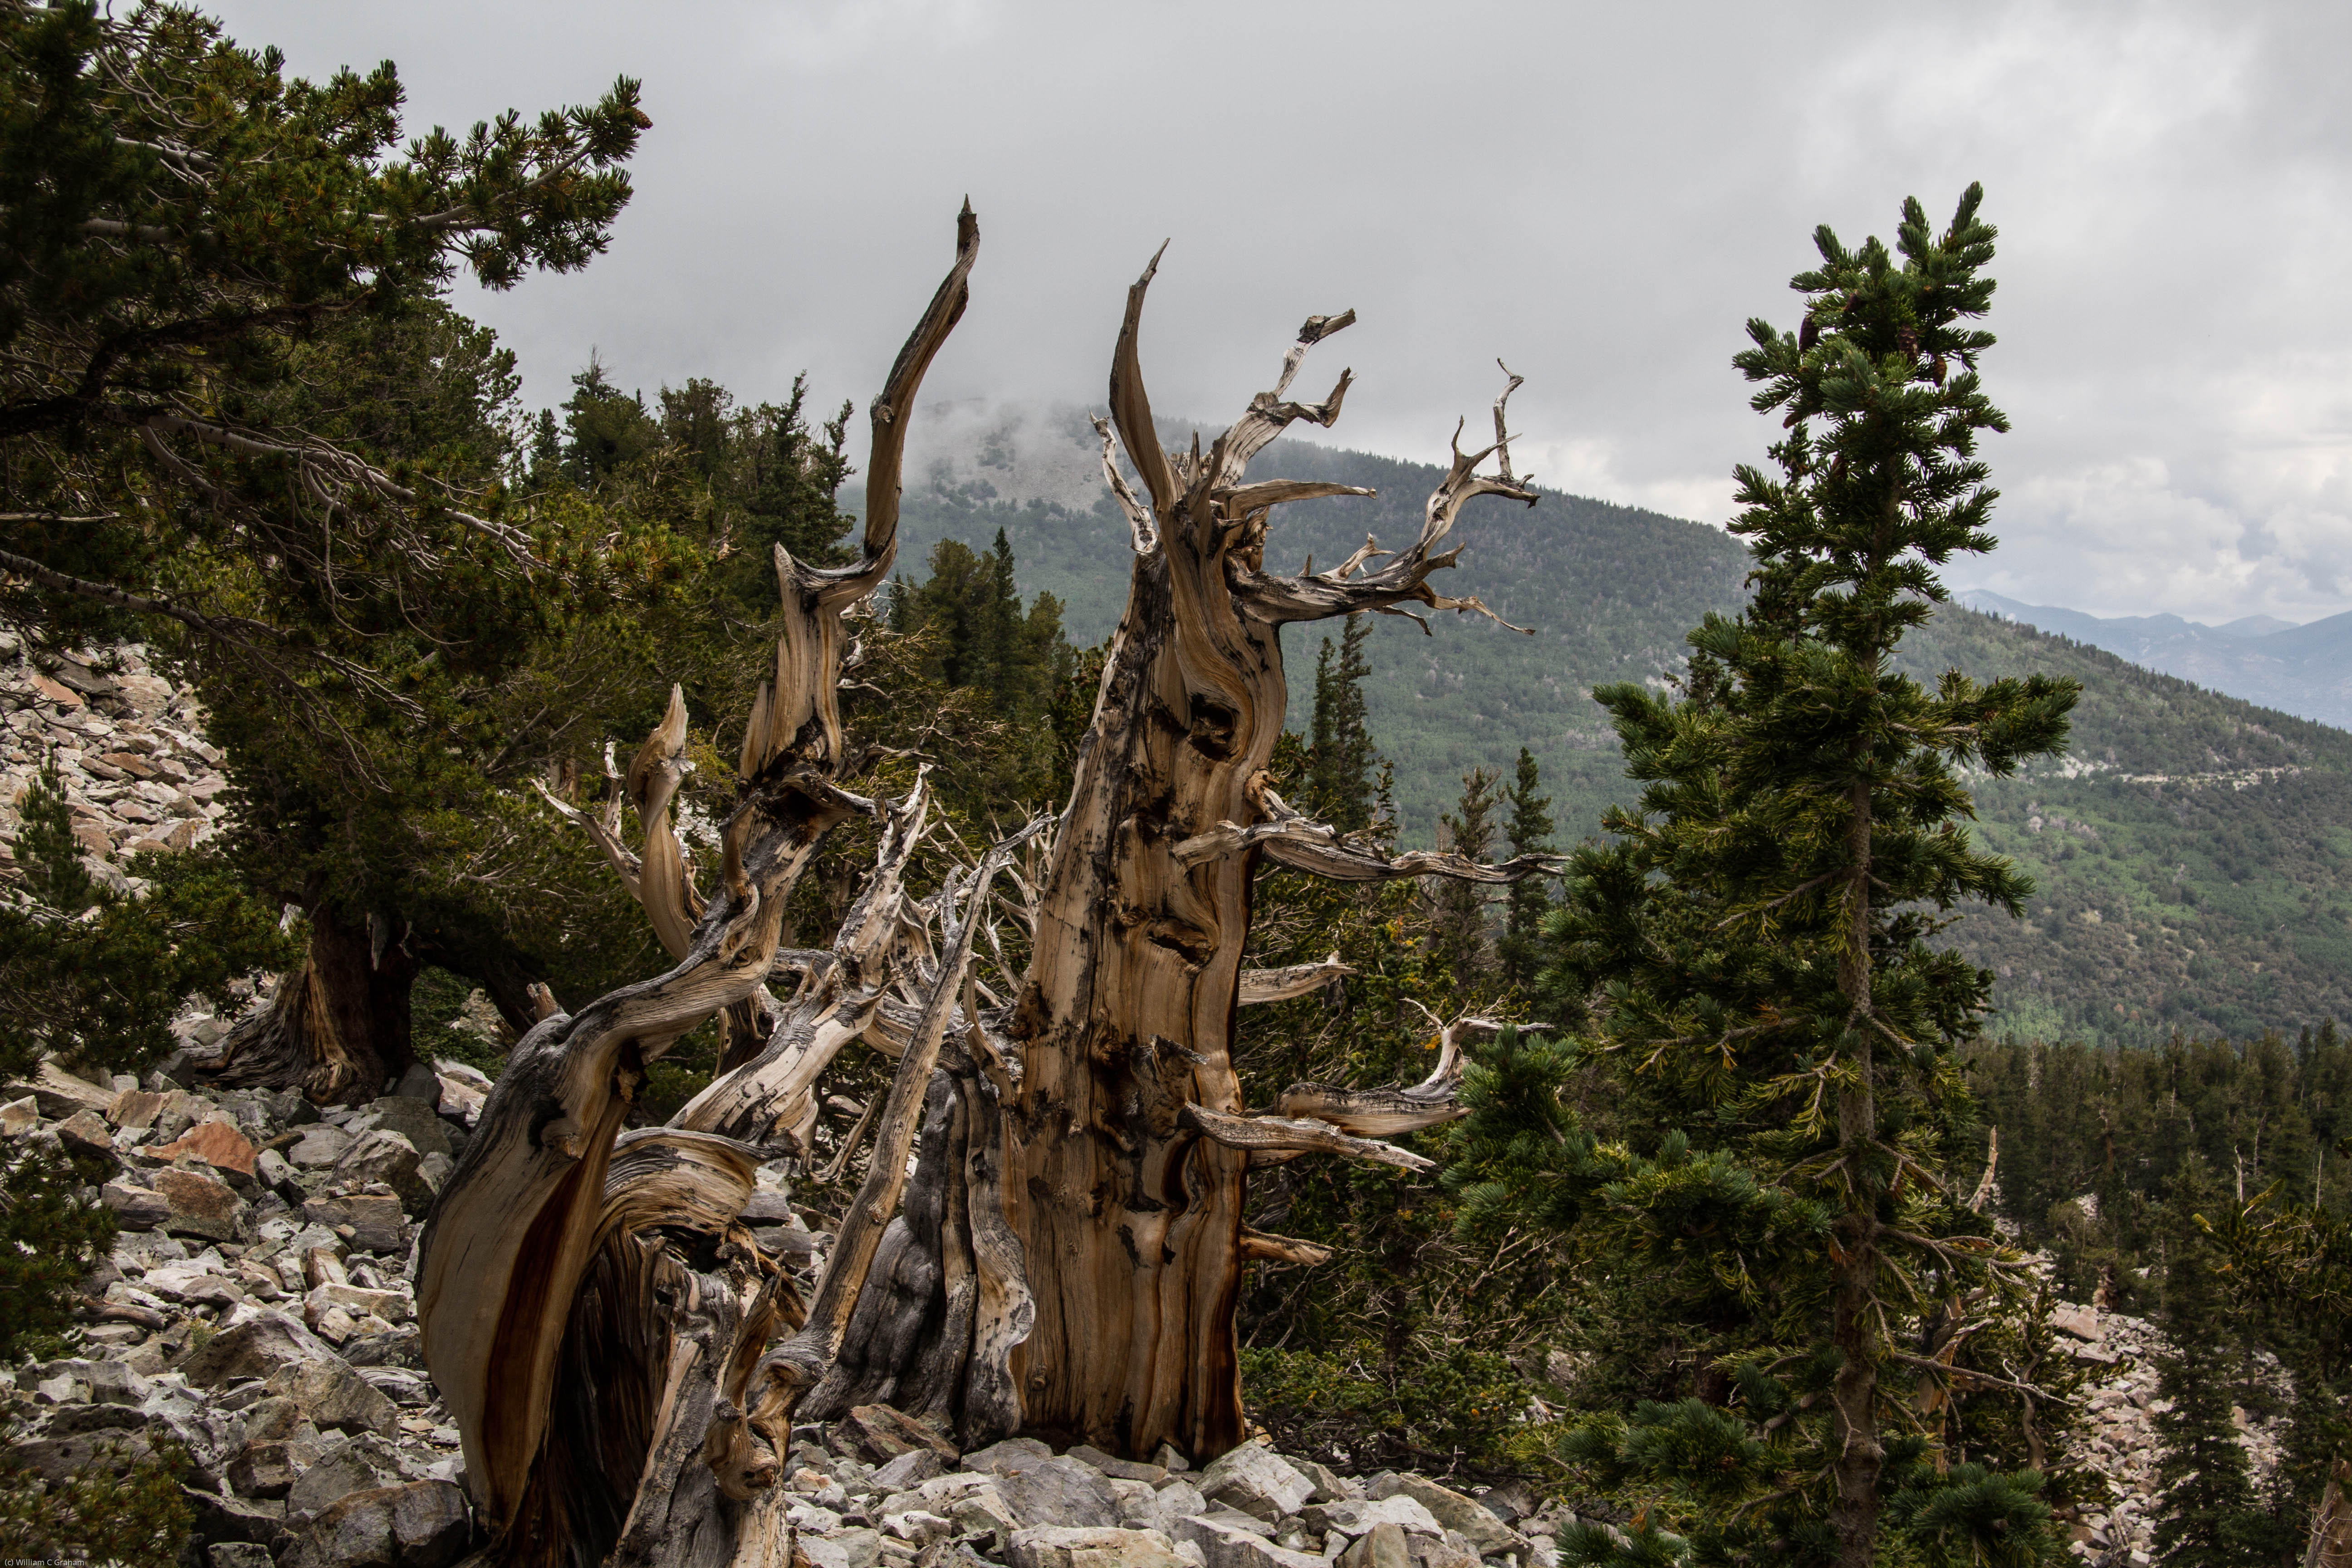 Patterns In Nature : The Independent Life Of Bristlecone Pine Forests